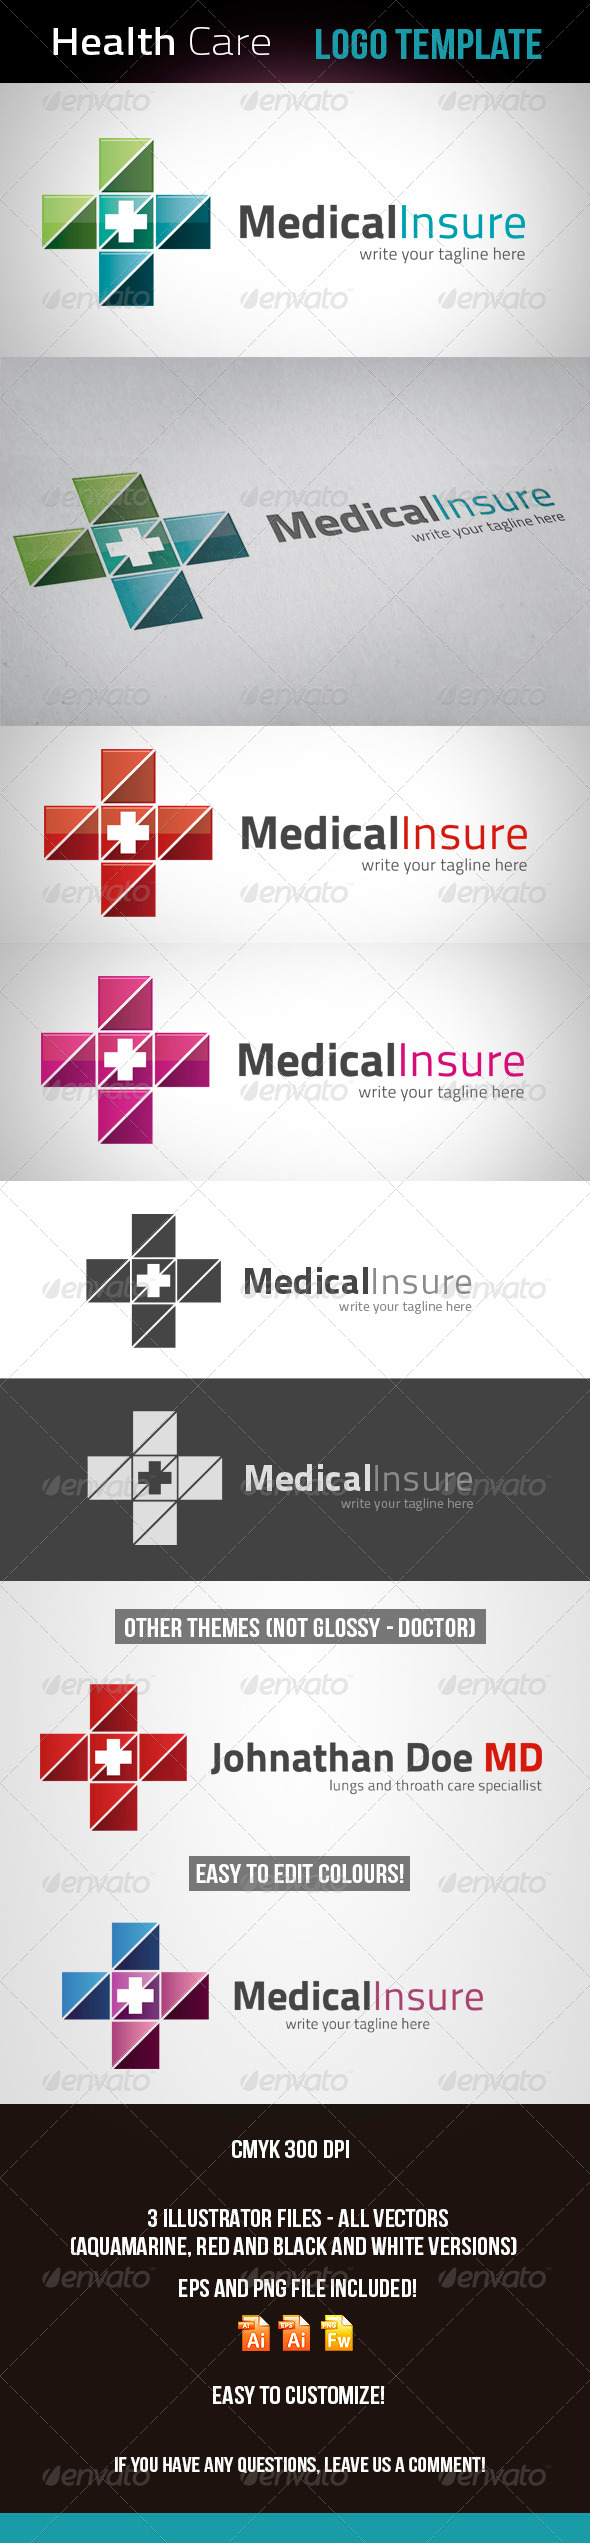 Doctor Health Care Logo Template